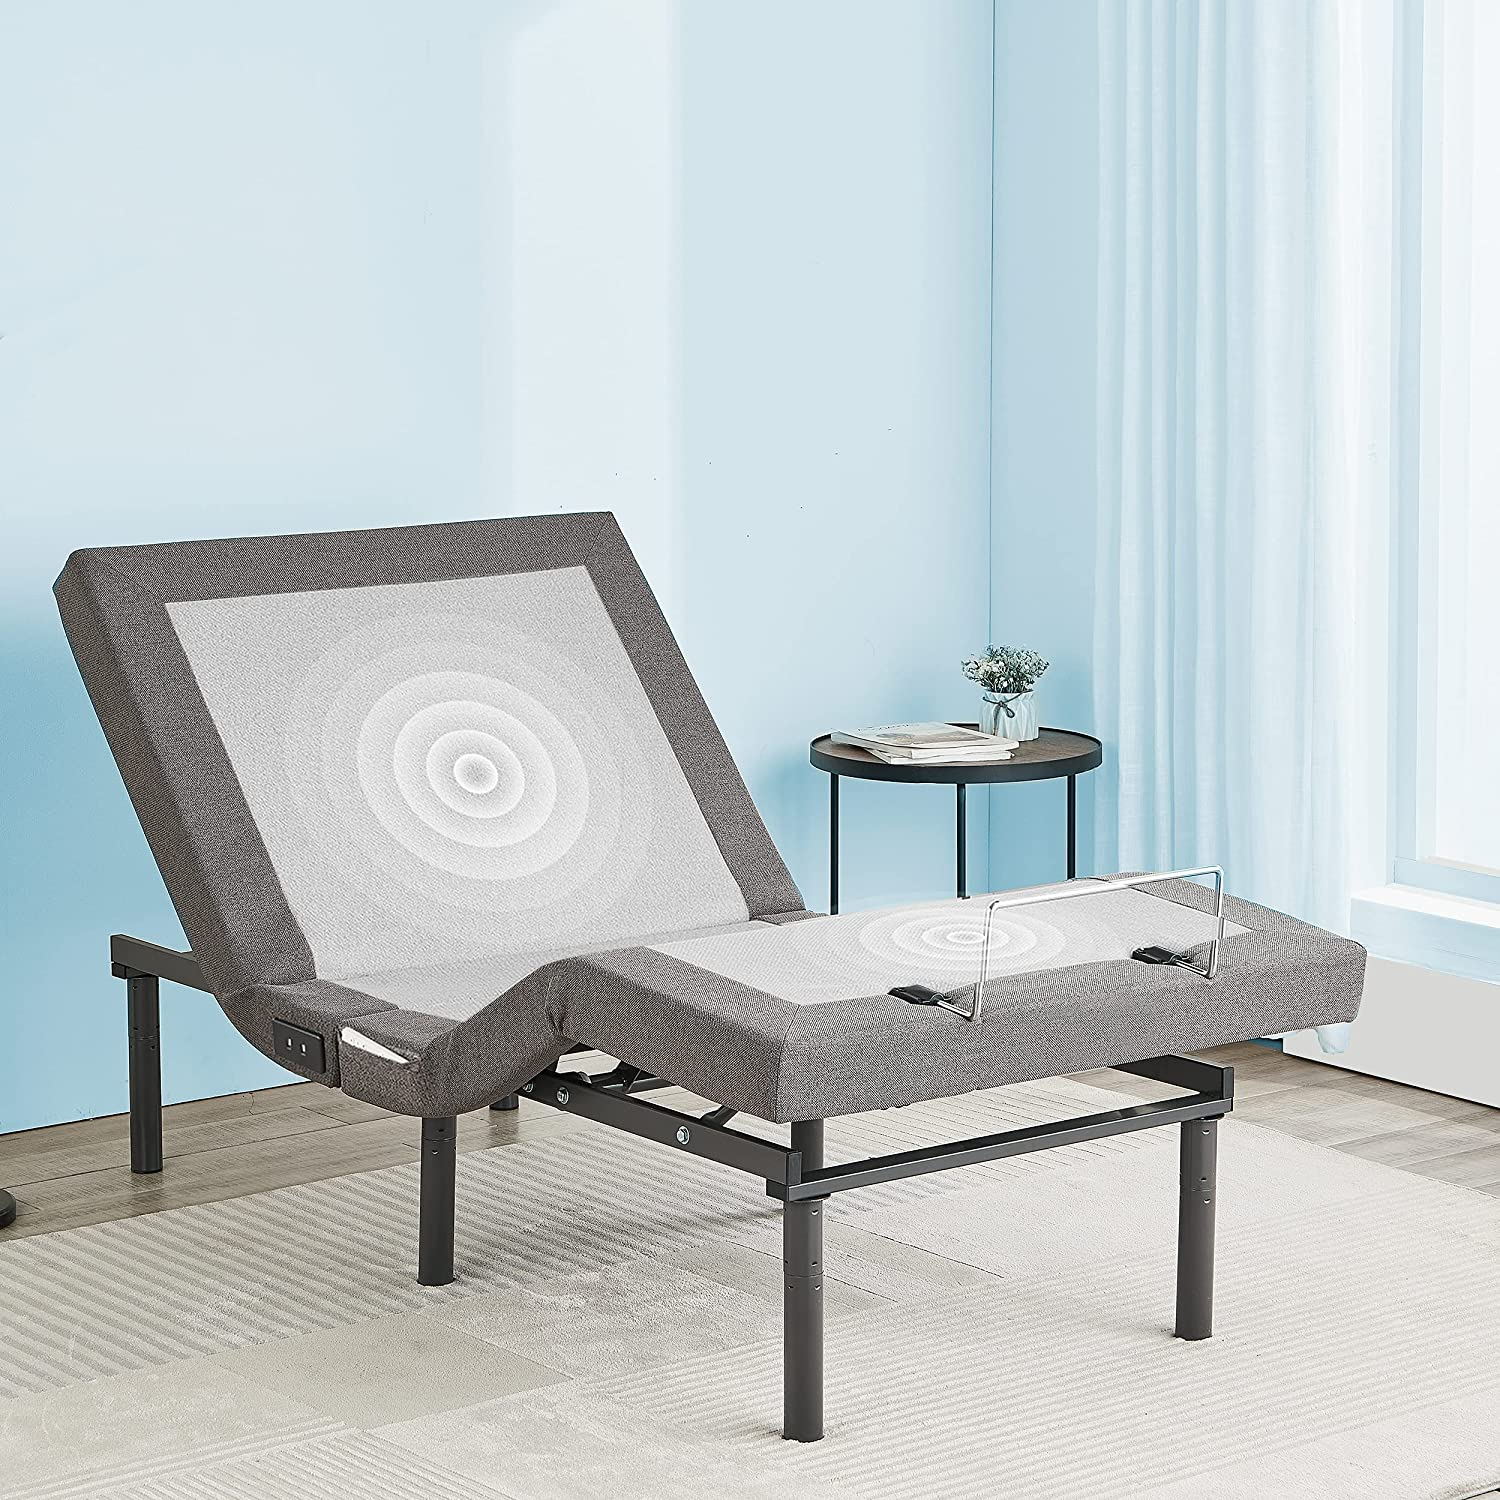 YIMODO Queen Size Electric Adjustable Bed Base Frame with Head a